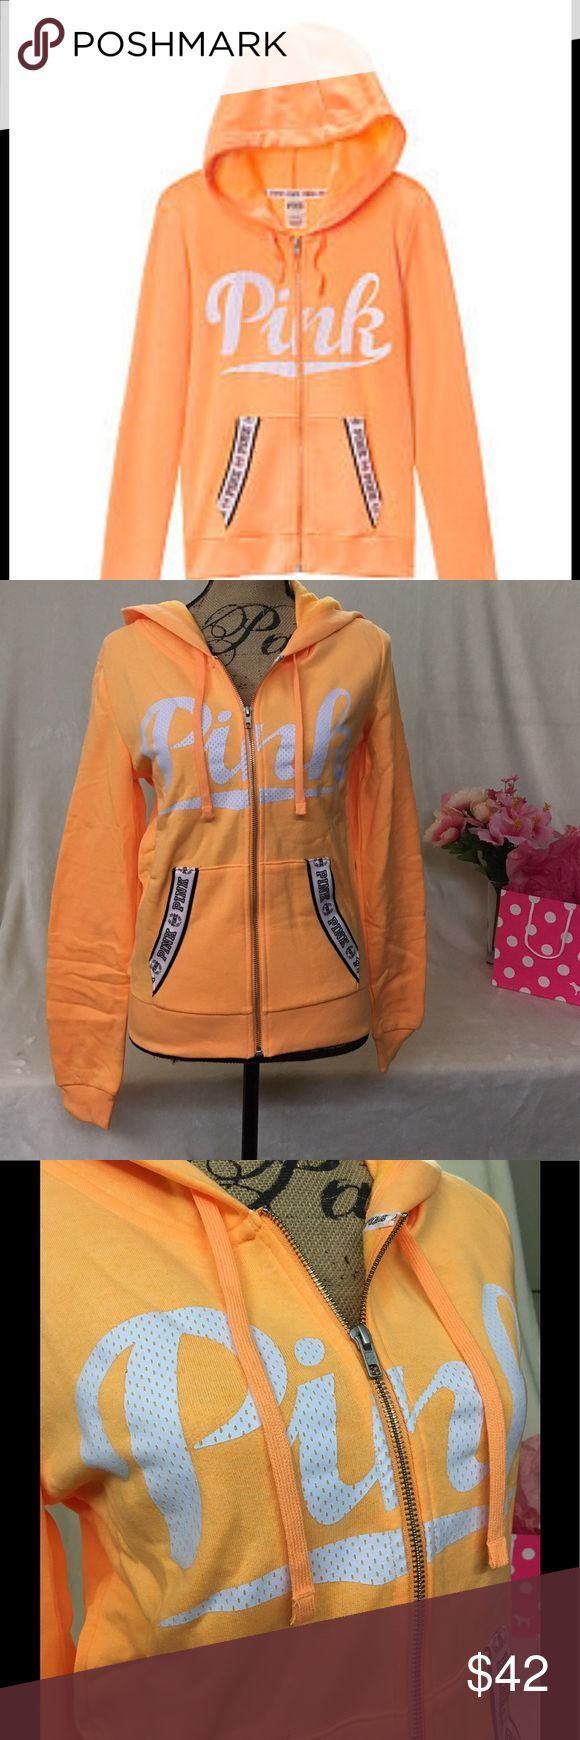 ✨🆕PERFECT FULL ZIP HOODIE🆕✨NWT SIZE M  This awesome full zip up with drawstring hoodie is super comfortable, lightweight & sports the PINK Logo in White across the chest. 2 decorated front slant pockets and the color is called Shine. Cotton/Poly blend. Imported. A very bright & Cheery jacket. Looks orange but looks yellow too. ITS A COOL COLOR❣️❣️BNWT  Online Purchase NO TRADES (sorry about wrinkles, straight out of online bag) PINK Victoria's Secret Jackets & Coats